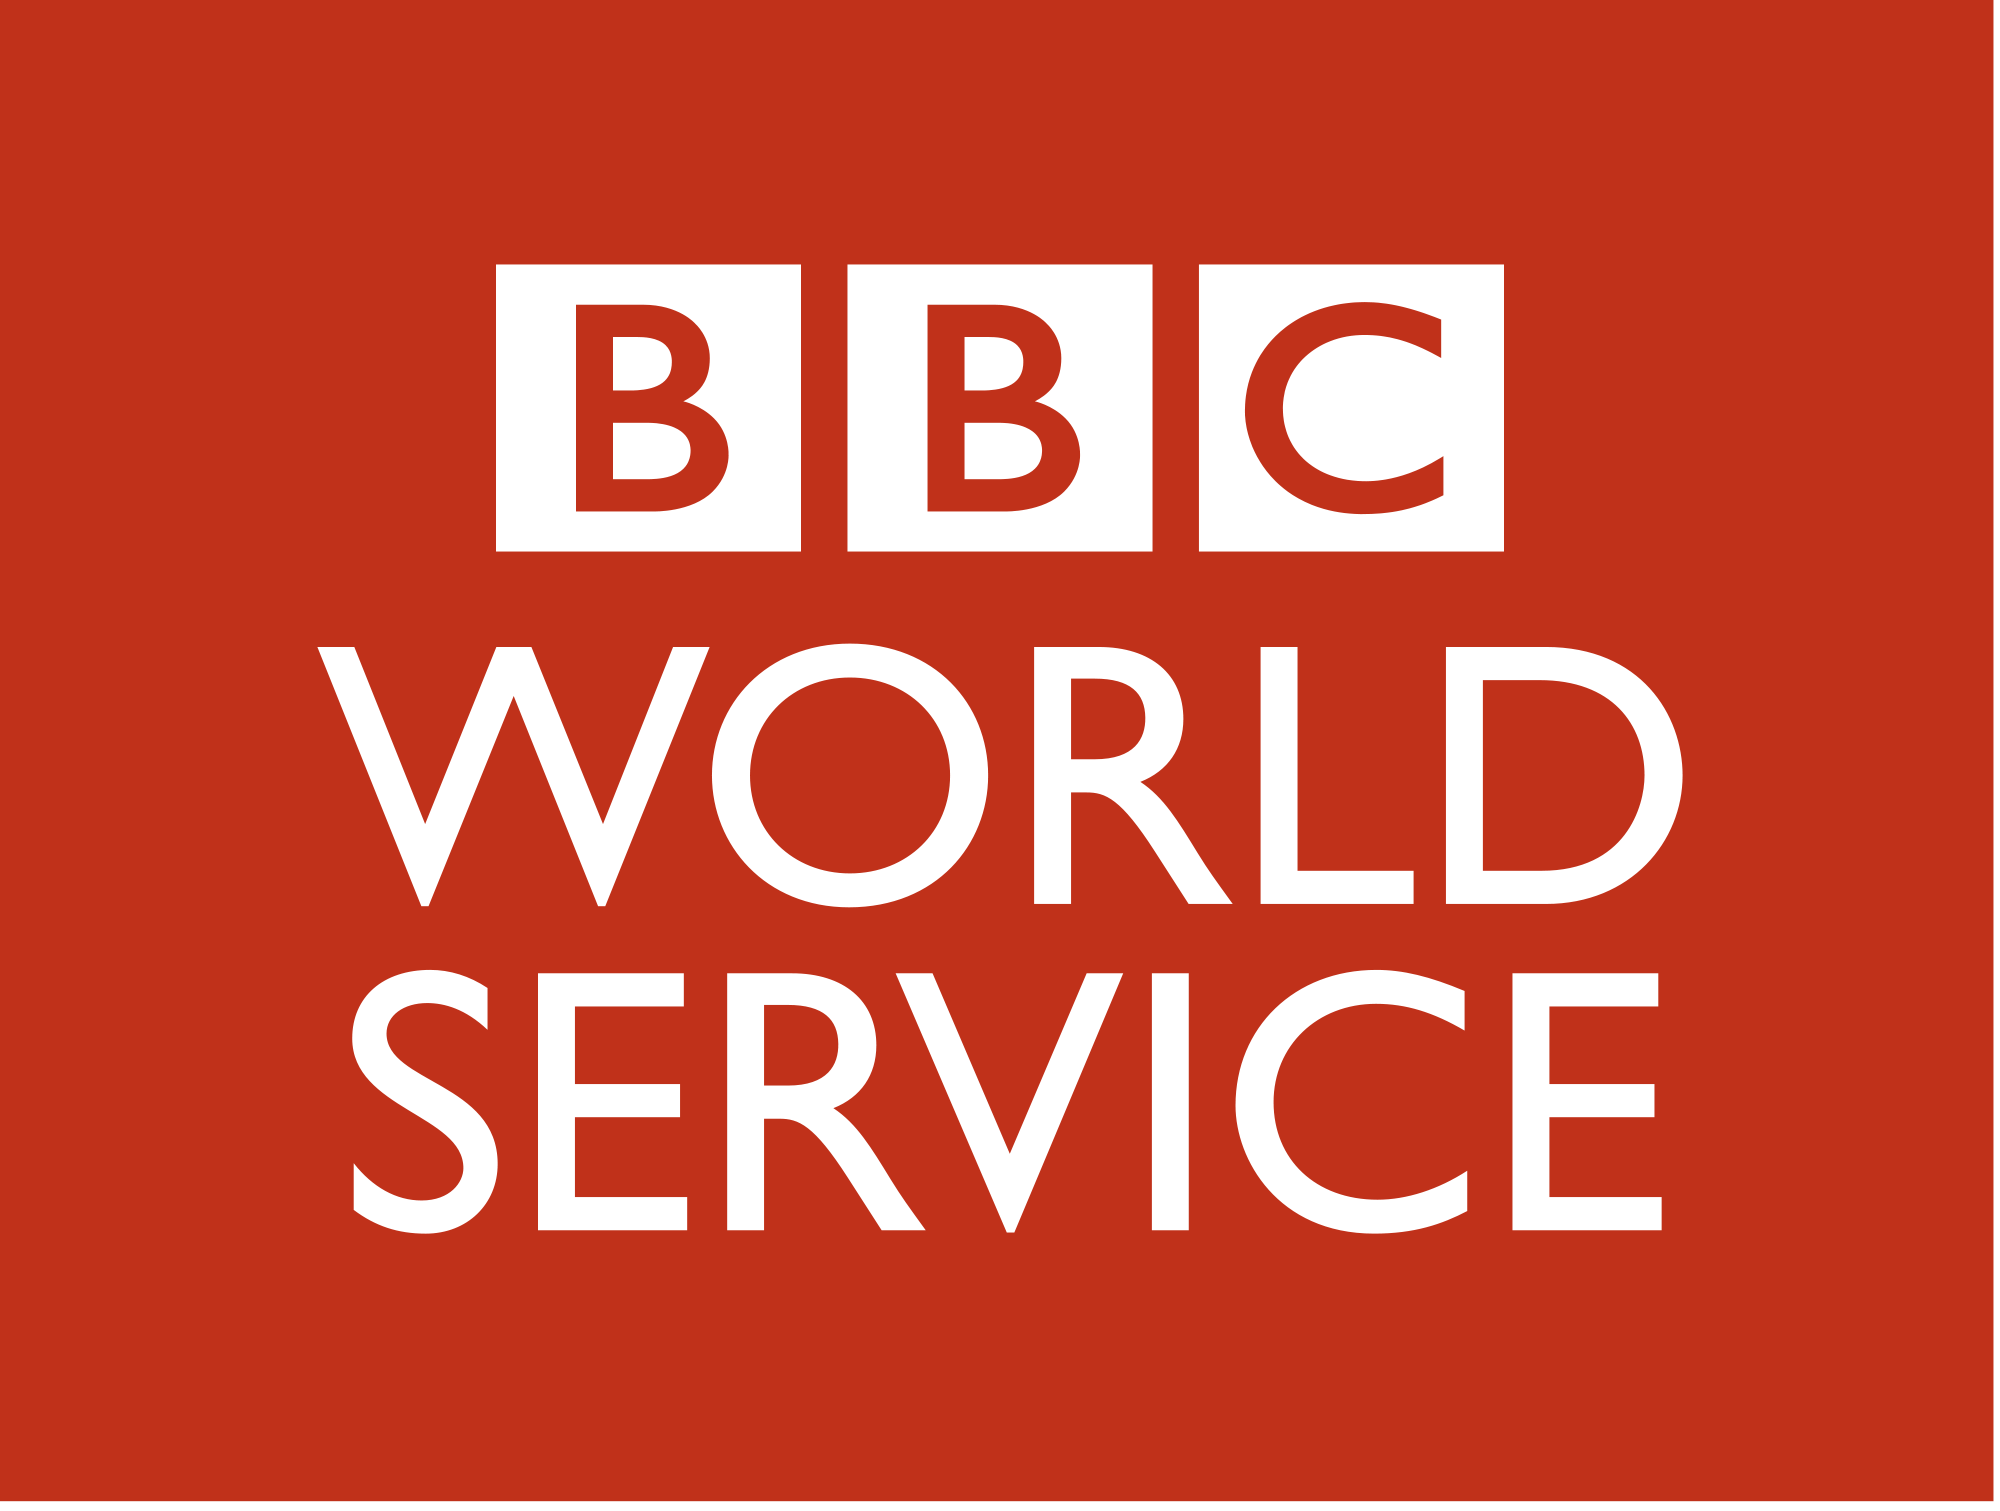 BBC World Service (March 6, 2020)